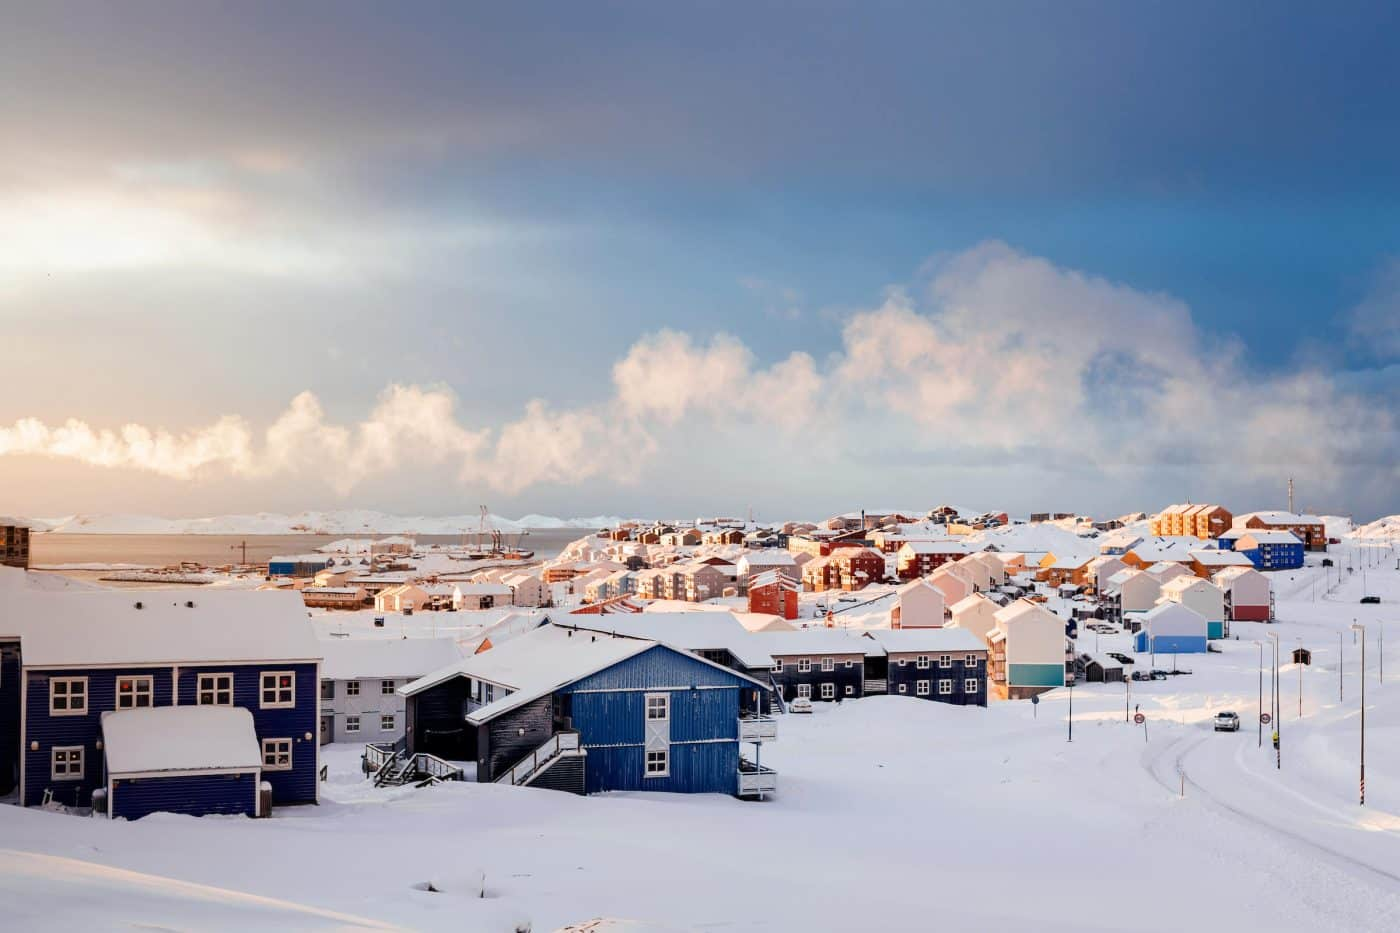 Sunrise over Nuussuaq in Nuuk in Greenland. Photo by Rebecca Gustafsson